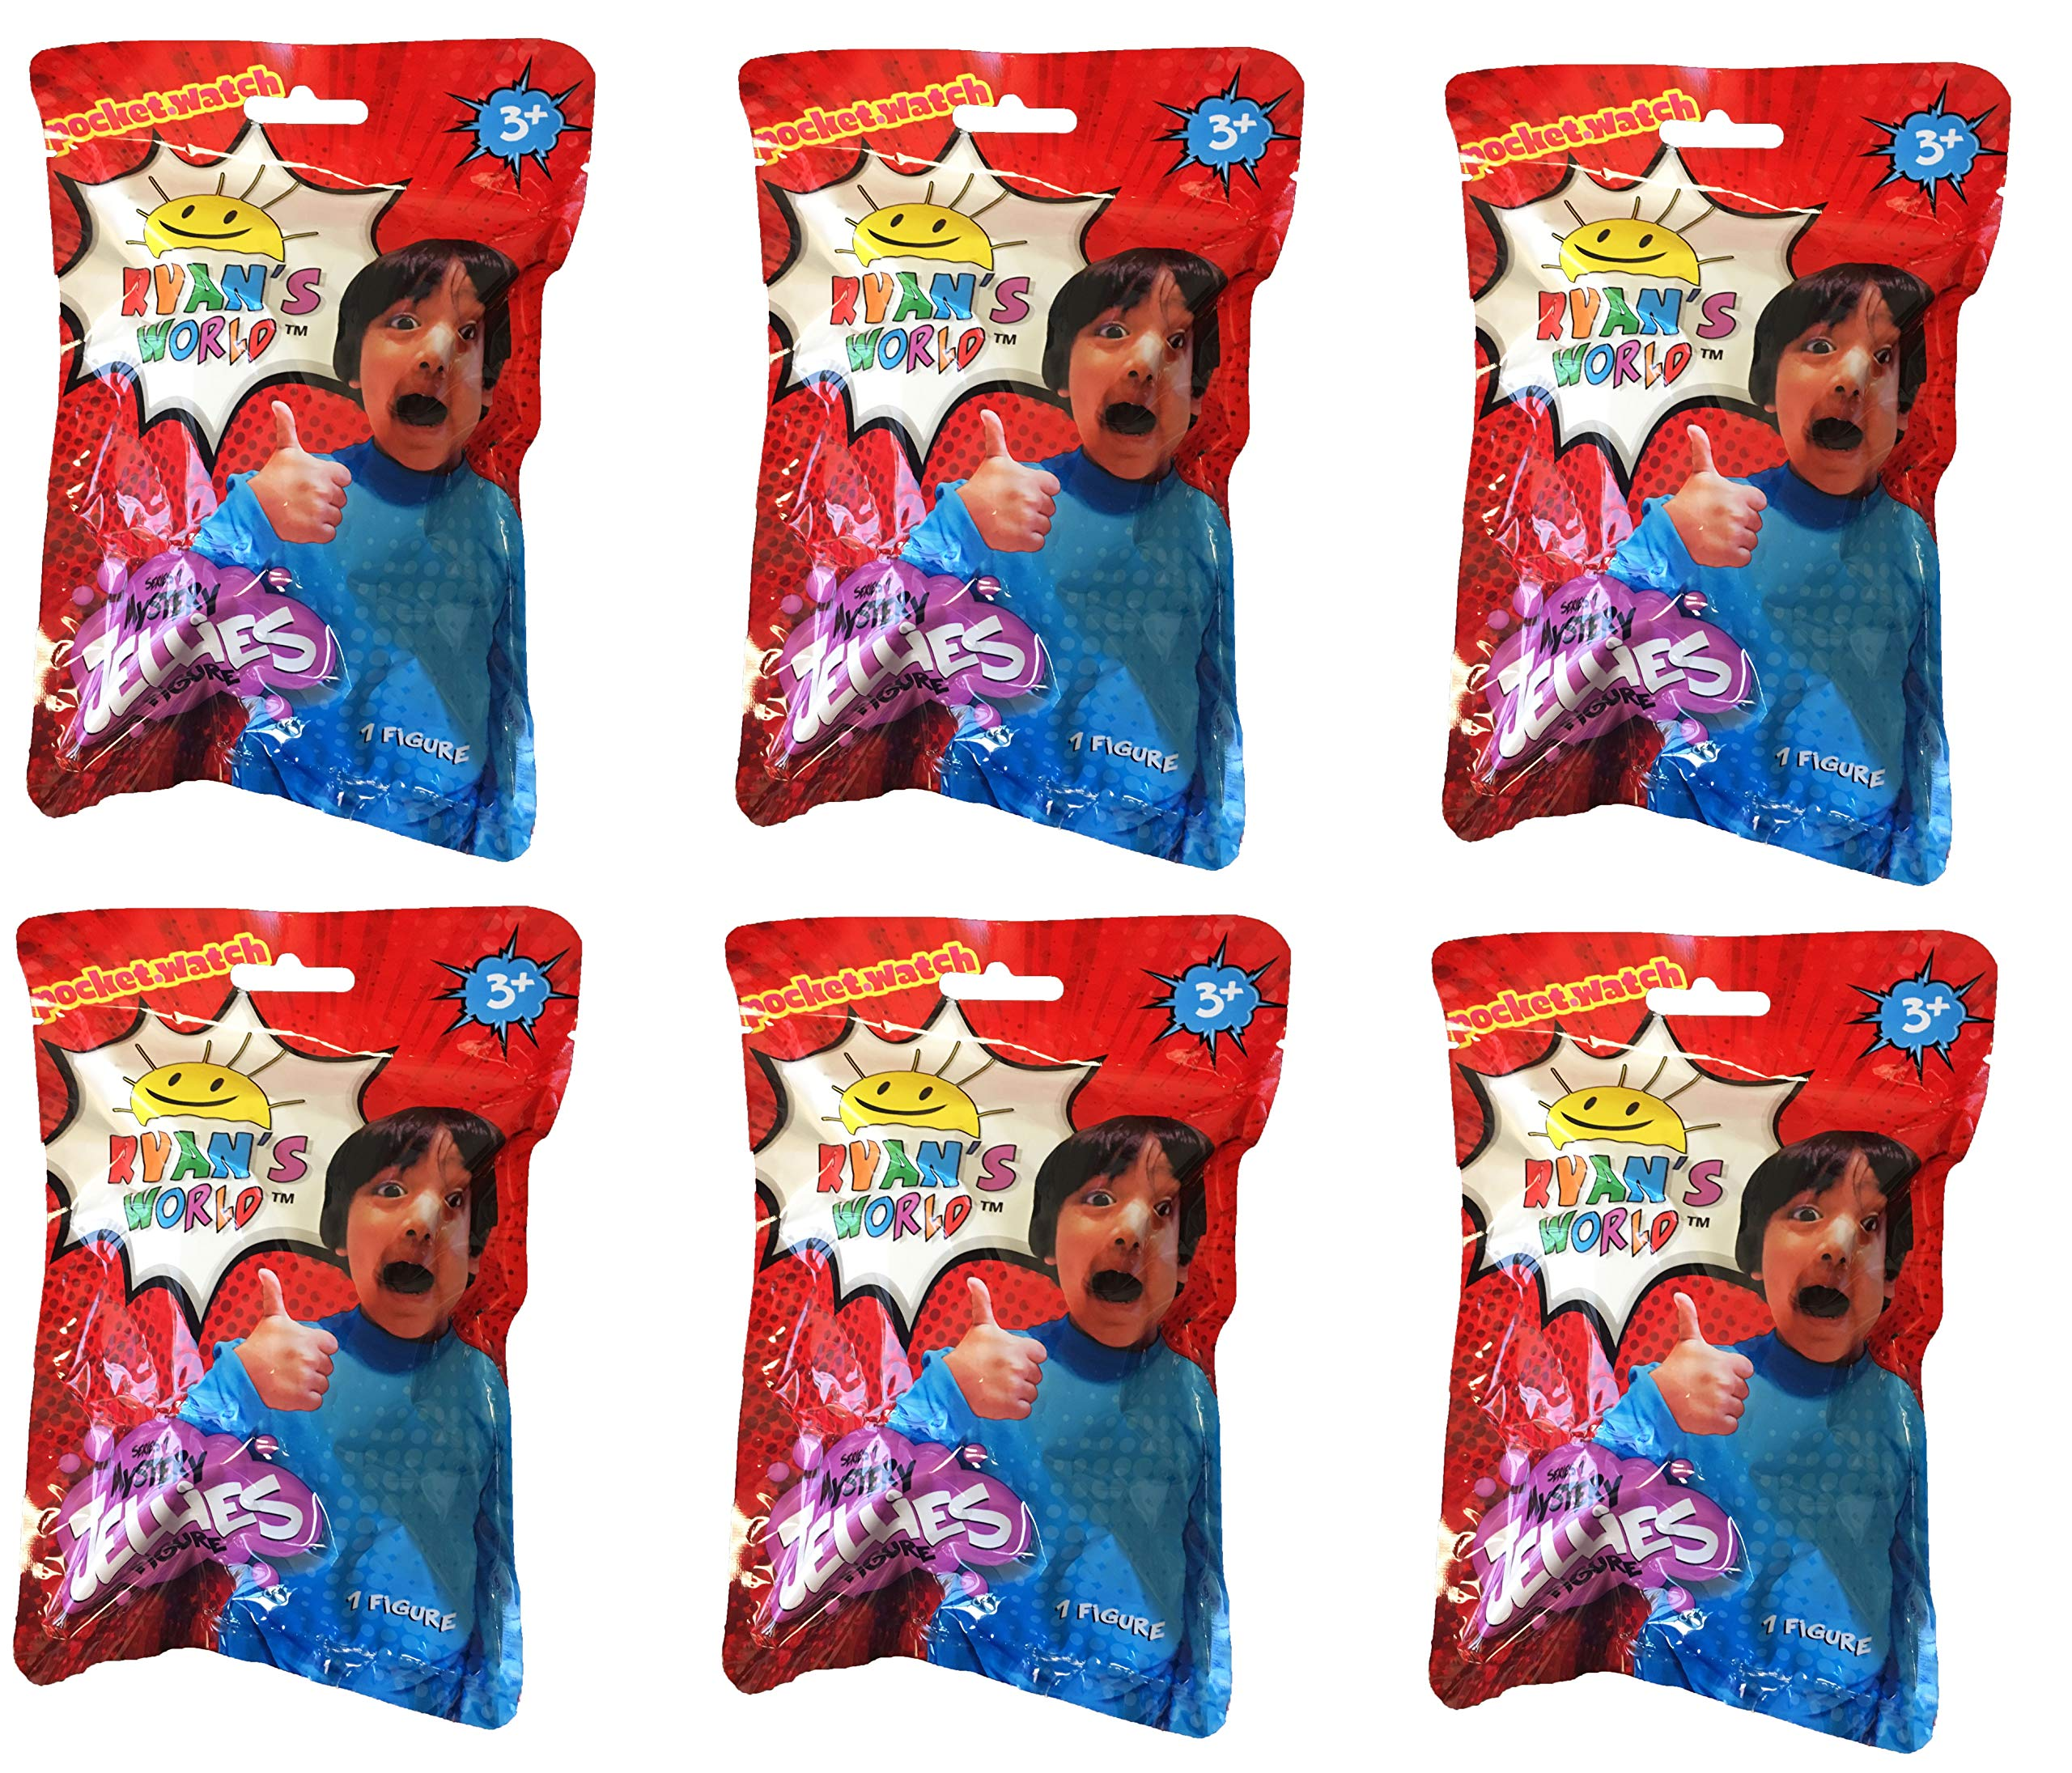 Ryan's World Surprise Jellies Squishy Toy Lot of 6 - Includes 6 Random Characters by Ryan's Toy Review by Ryan's World (Image #1)